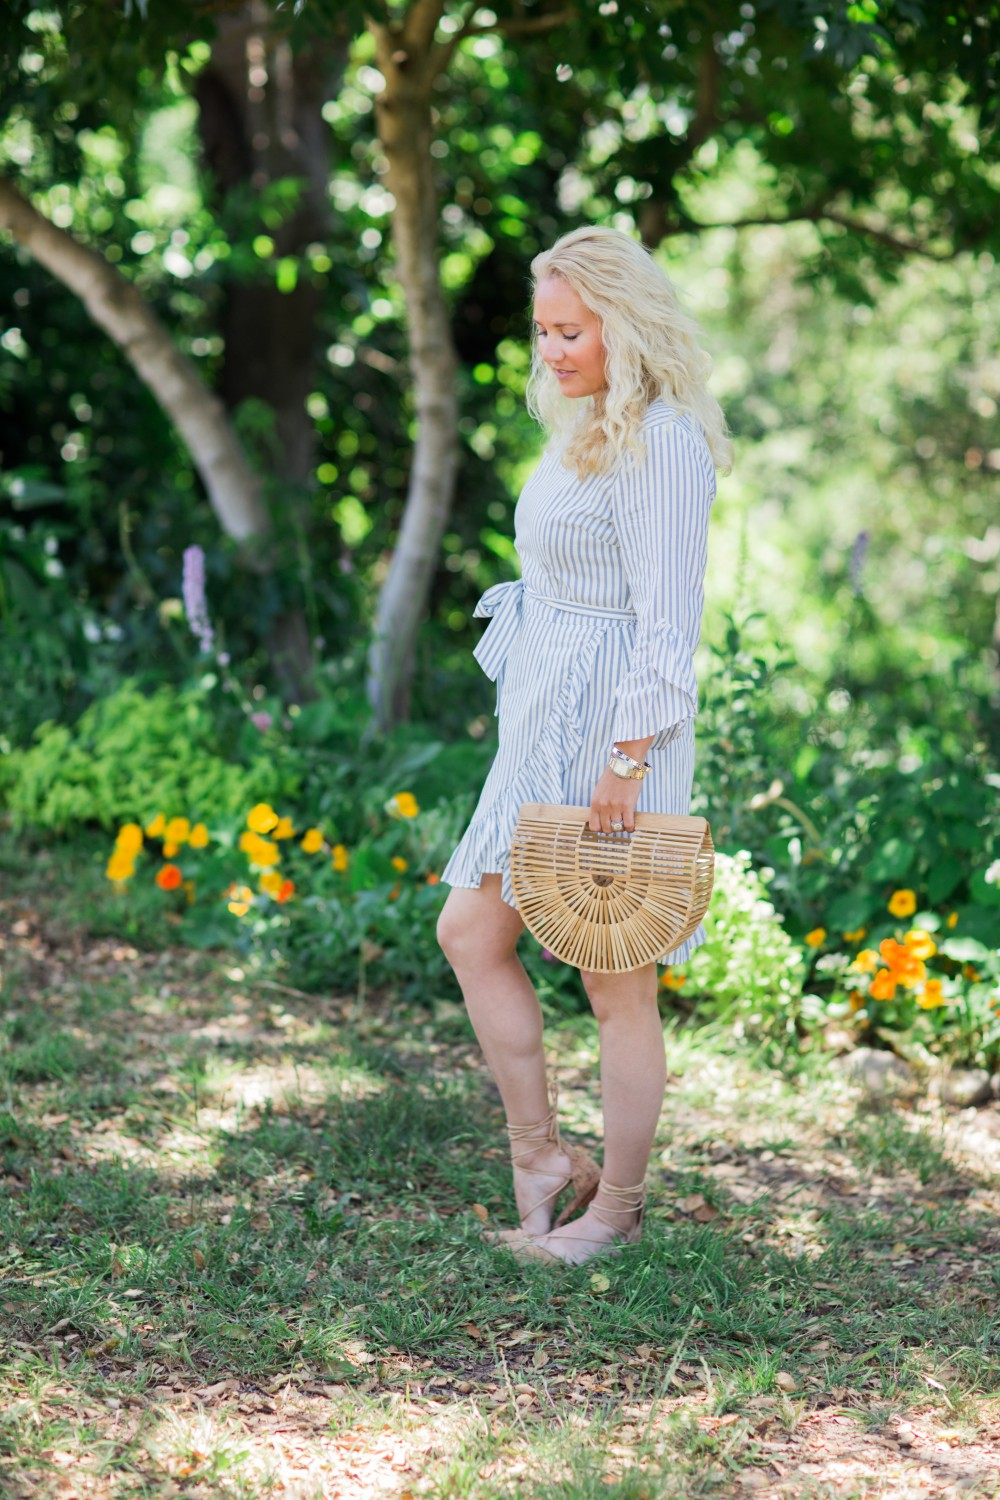 4th of July Picnic Outfit-Outfit Inspiration-Who What Wear for Target-Summer Style-Have Need Want-4th of July-July Fourth Outfit 8